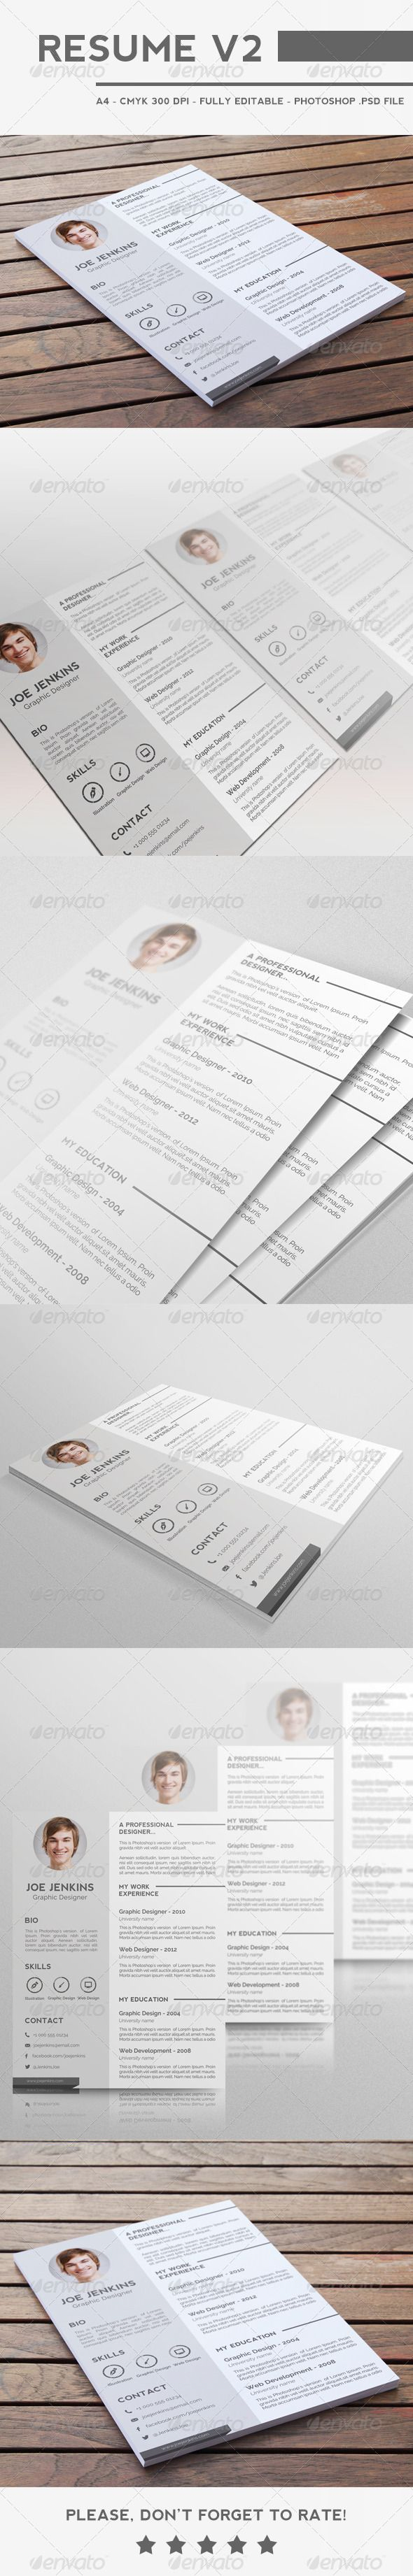 Resume V2 15 best Landscape Design Website